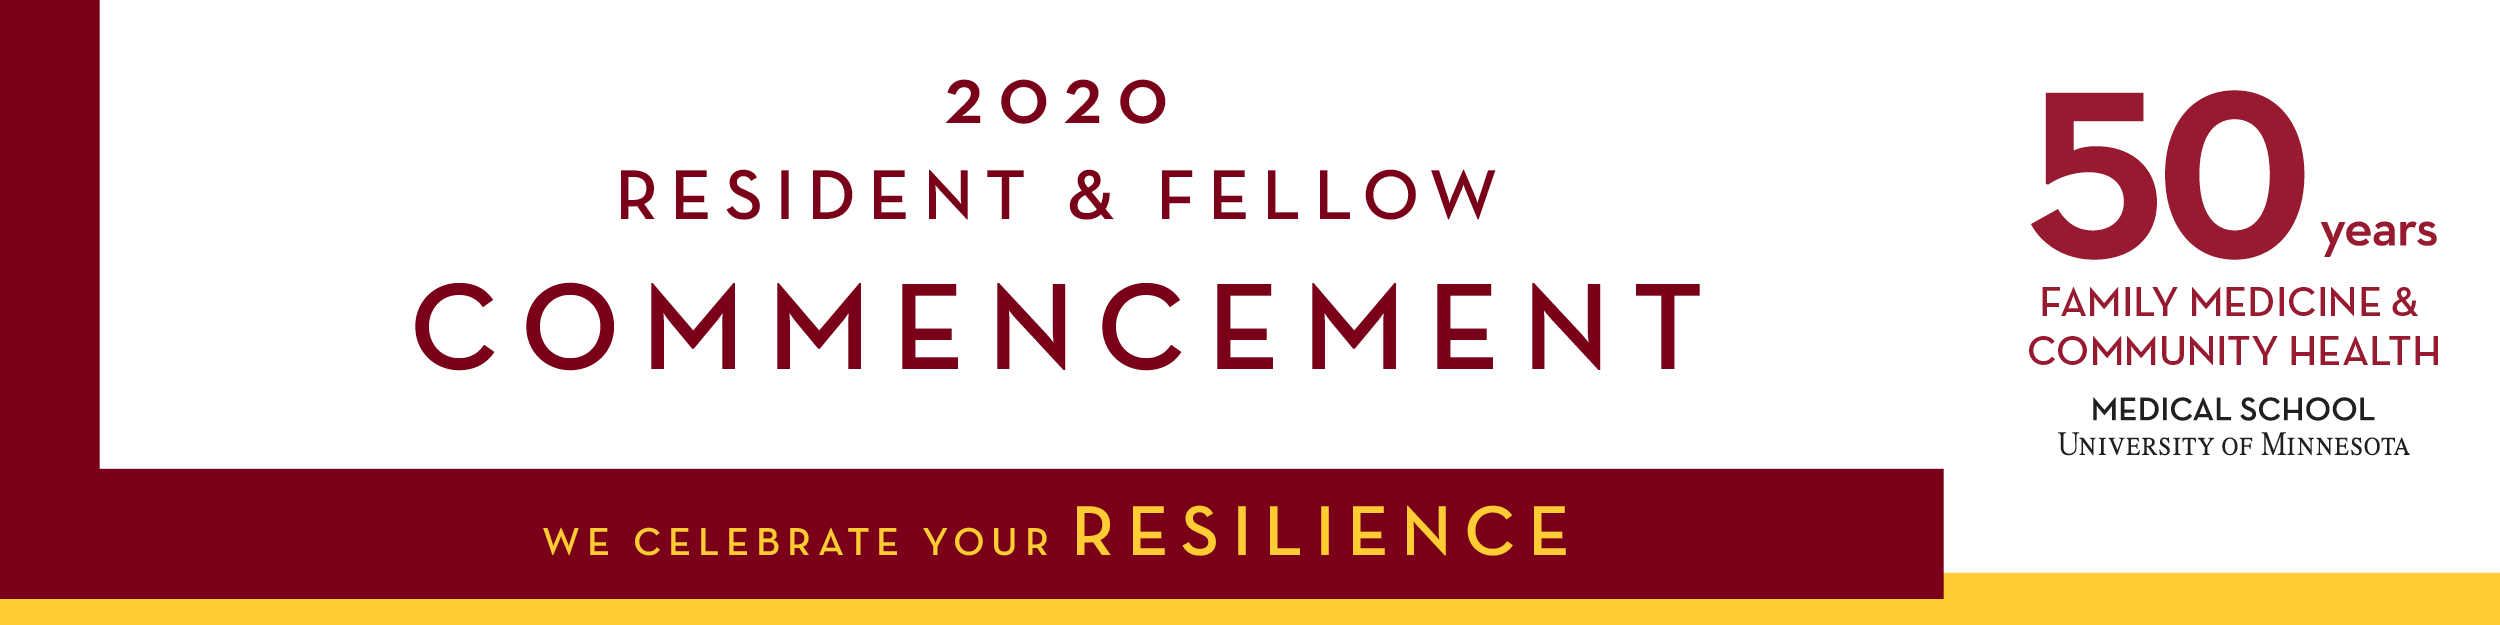 2020 Resident And Fellow Commencement   Medical School Pertaining To University Of Minnesota2020 2021 Academic Calendar